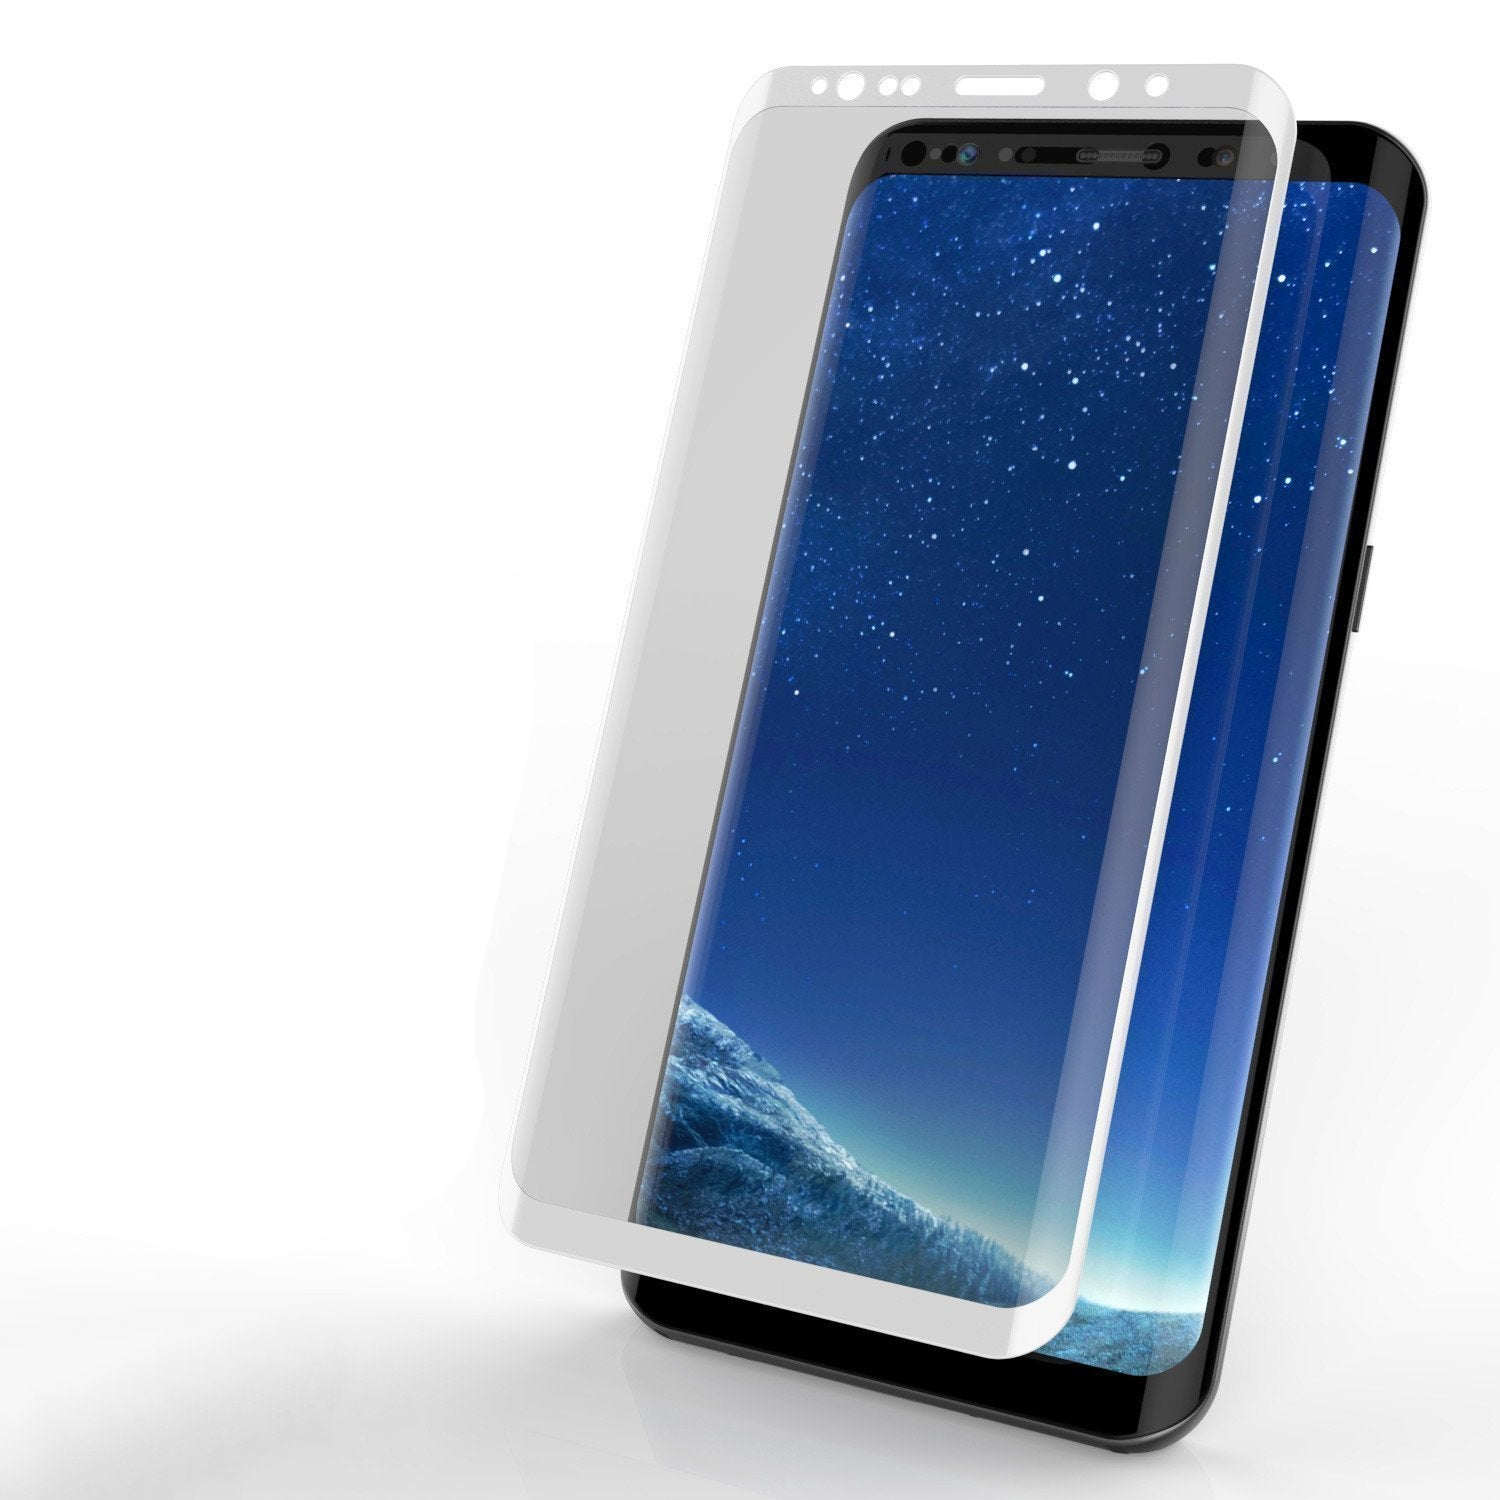 Galaxy S10 Lite White Punkcase Glass SHIELD Tempered Glass Screen Protector 0.33mm Thick 9H Glass